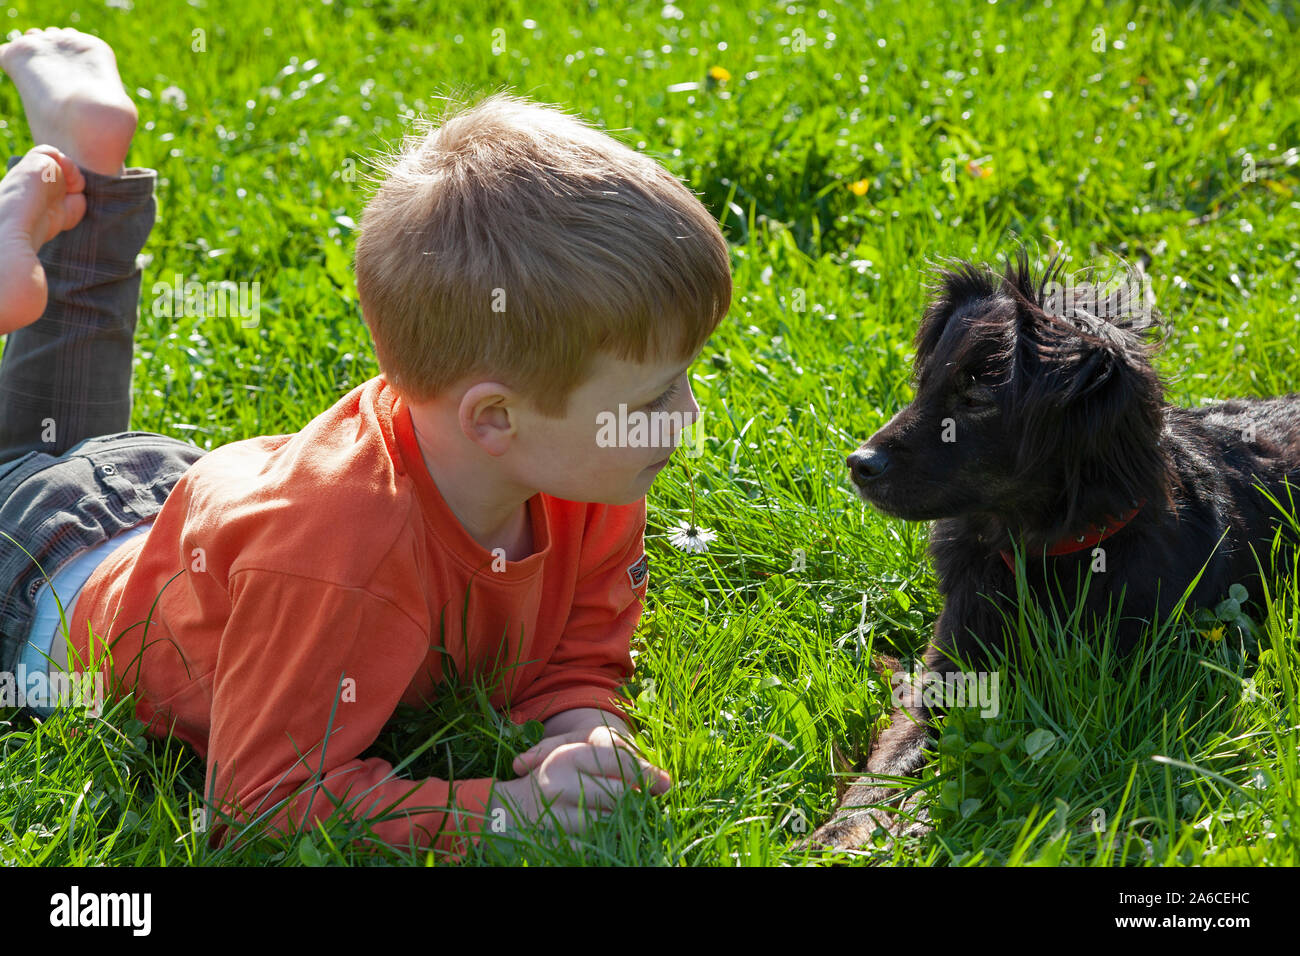 Portrait of a young boy and his dog. Stock Photo